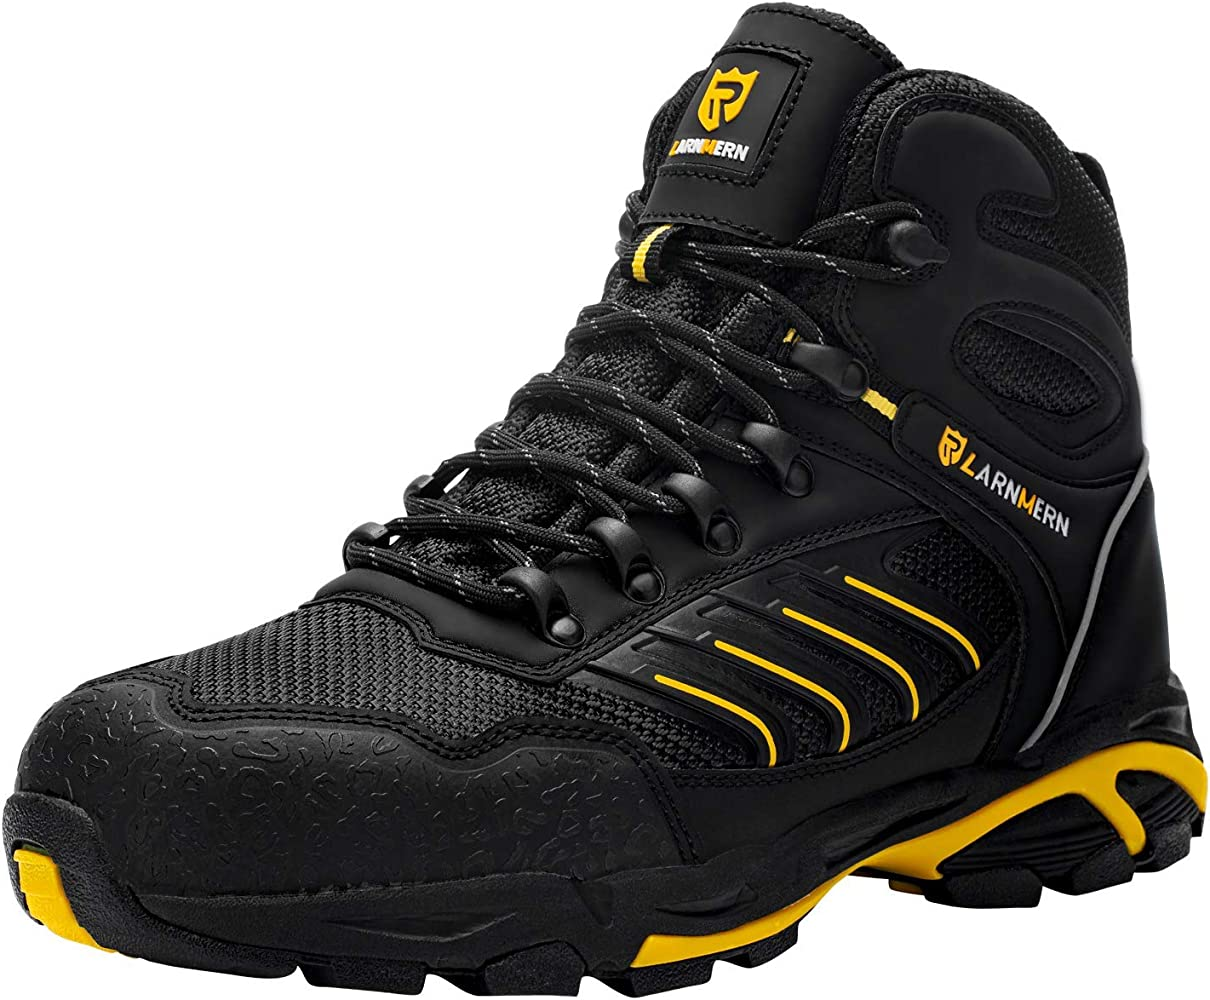 LARNMERN Steel Toe Boots Puncture Proof